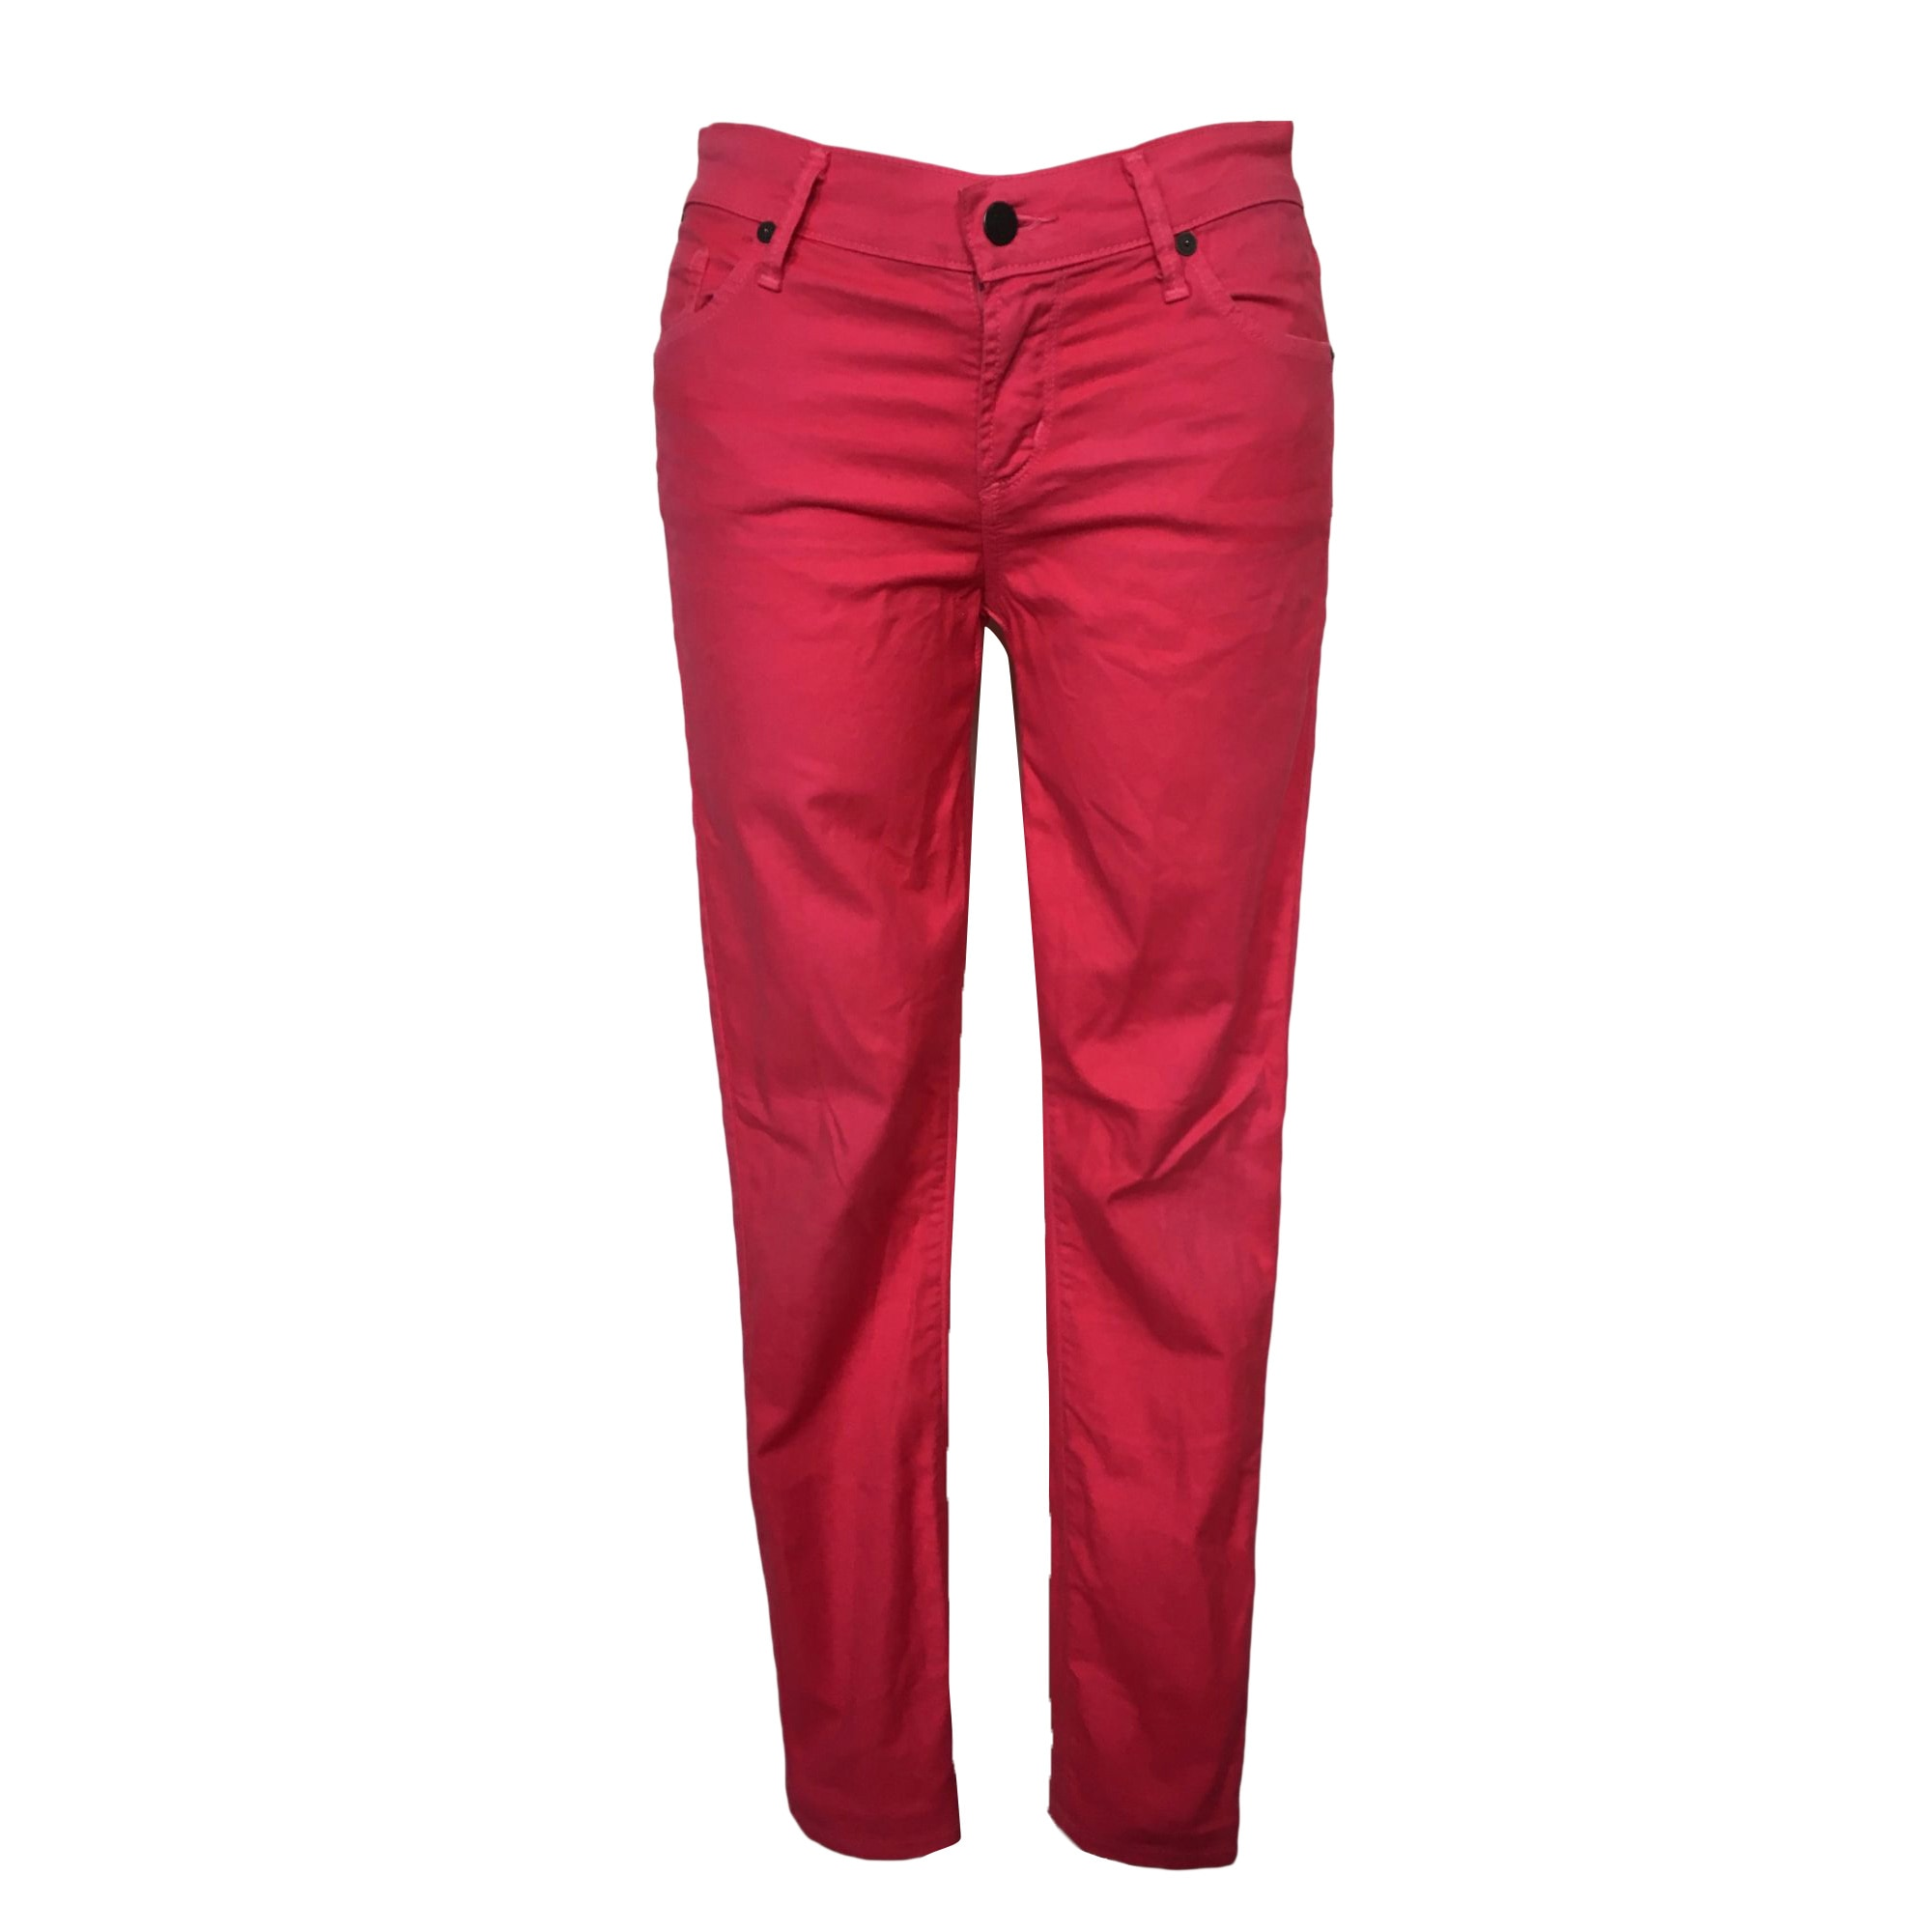 Jeans slim CITIZENS OF HUMANITY Rose, fuschia, vieux rose